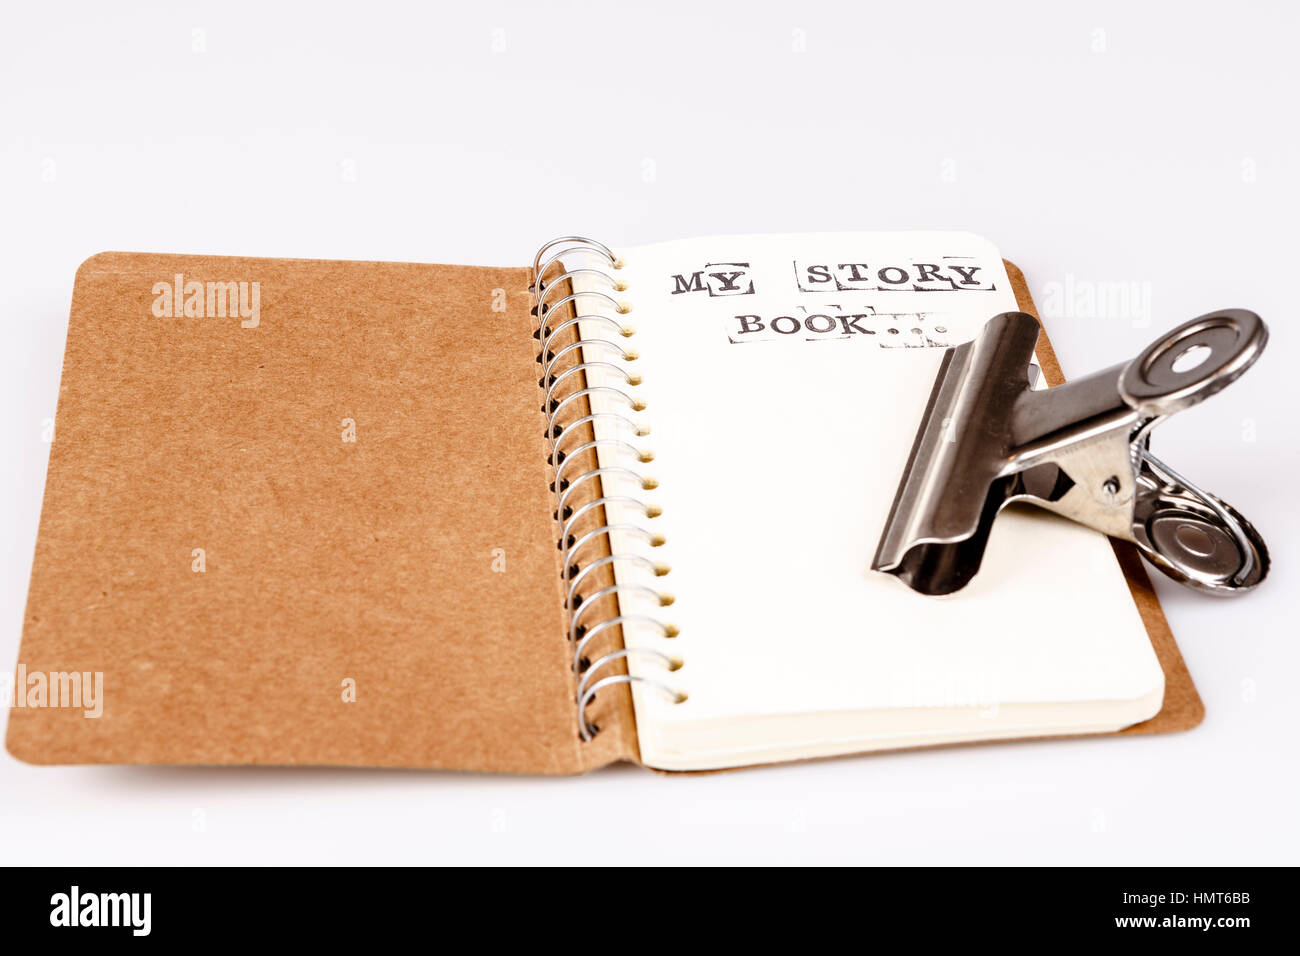 open empty diary or story book on white - Stock Image